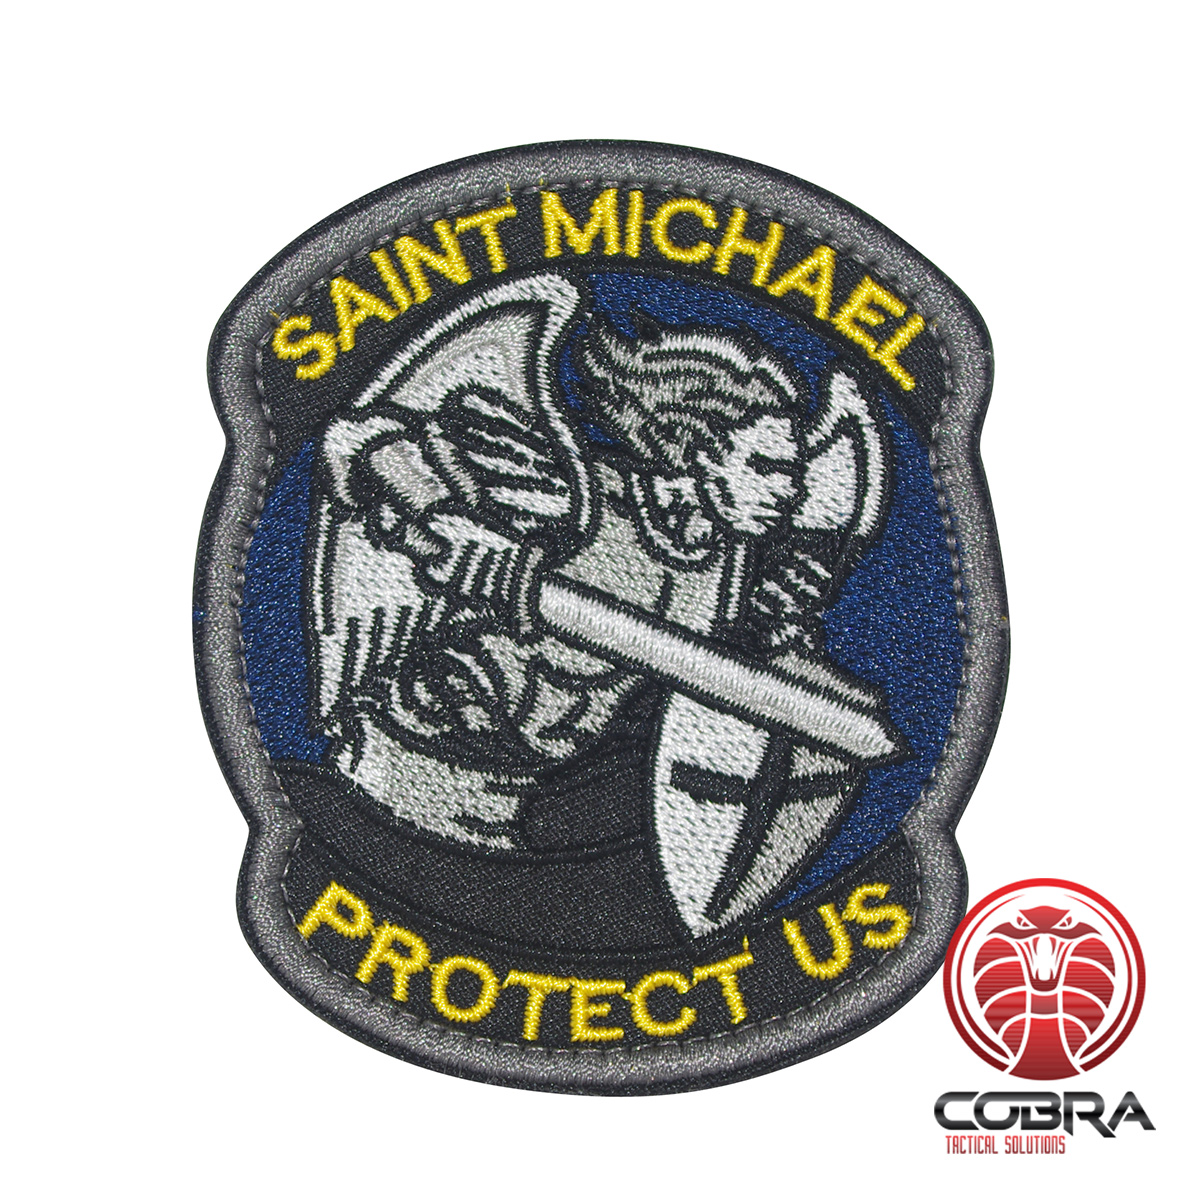 SWAT PROTECT US SAINT MICHAEL TACTICAL BADGE HOOK MORALE MILITARY PATCH